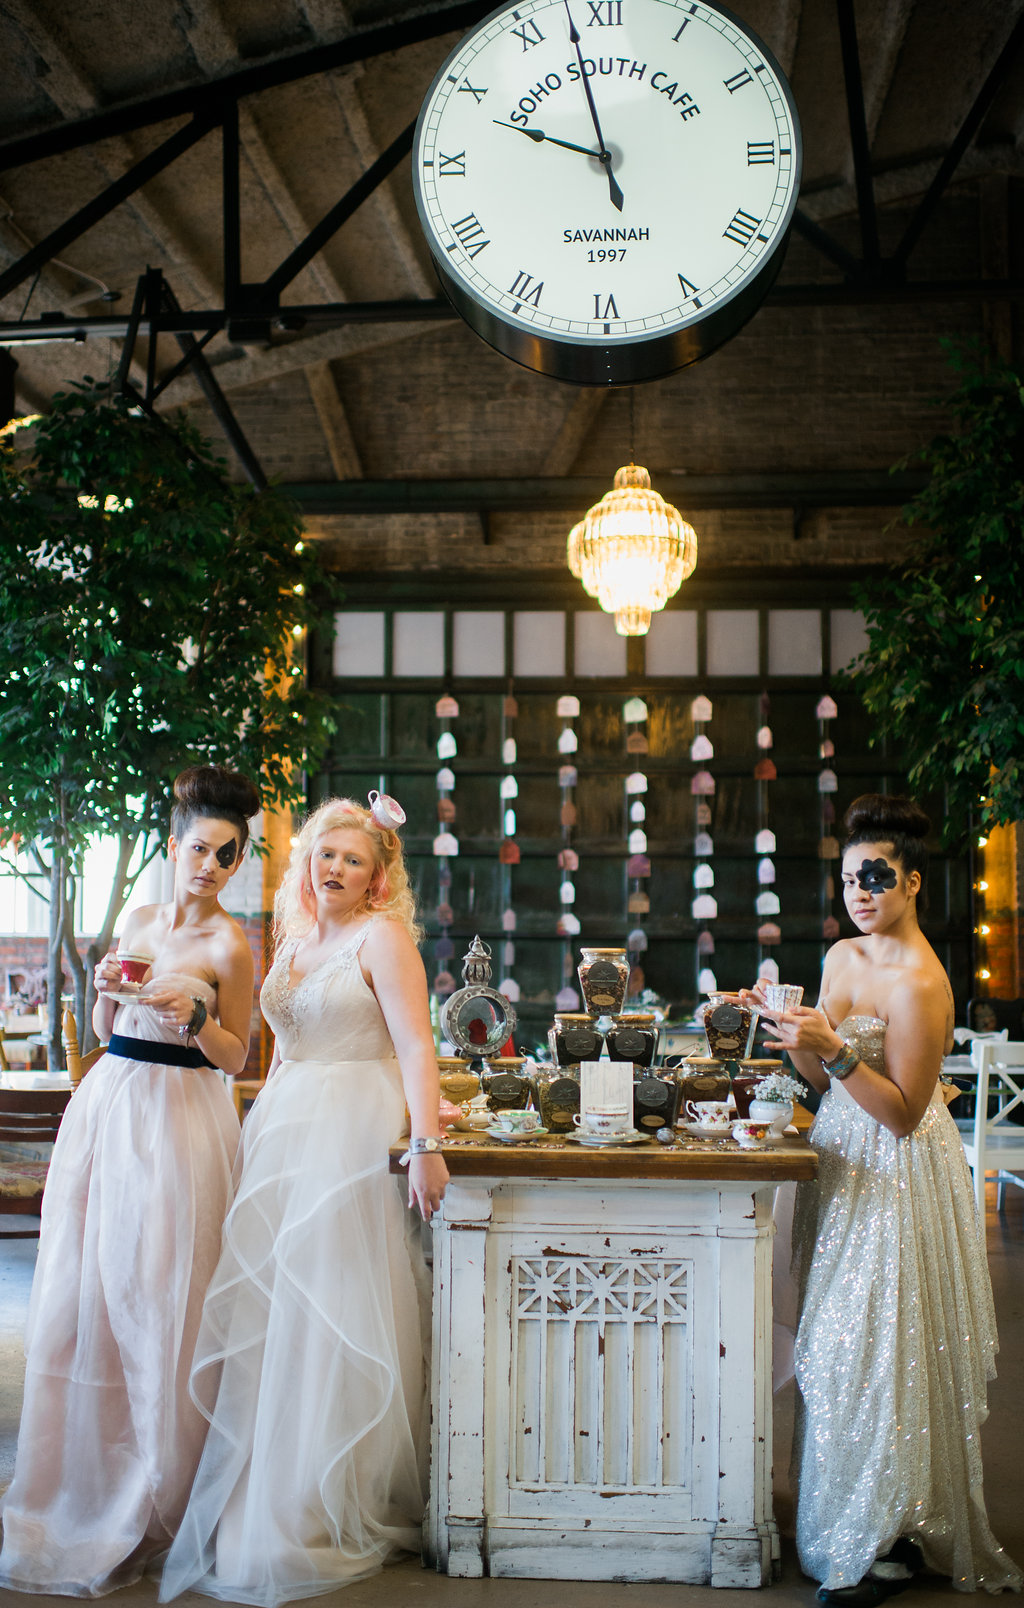 alice-in-wonderland-wedding-rach-lea-photography-rach-loves-troy-photography-ivory-and-beau-bridal-boutique-soho-cafe-savannah-wedding-venue-savannah-weddings-savannah-wedding-planner-sarah-seven-golden-lights-blushing-forever-september-12.jpg